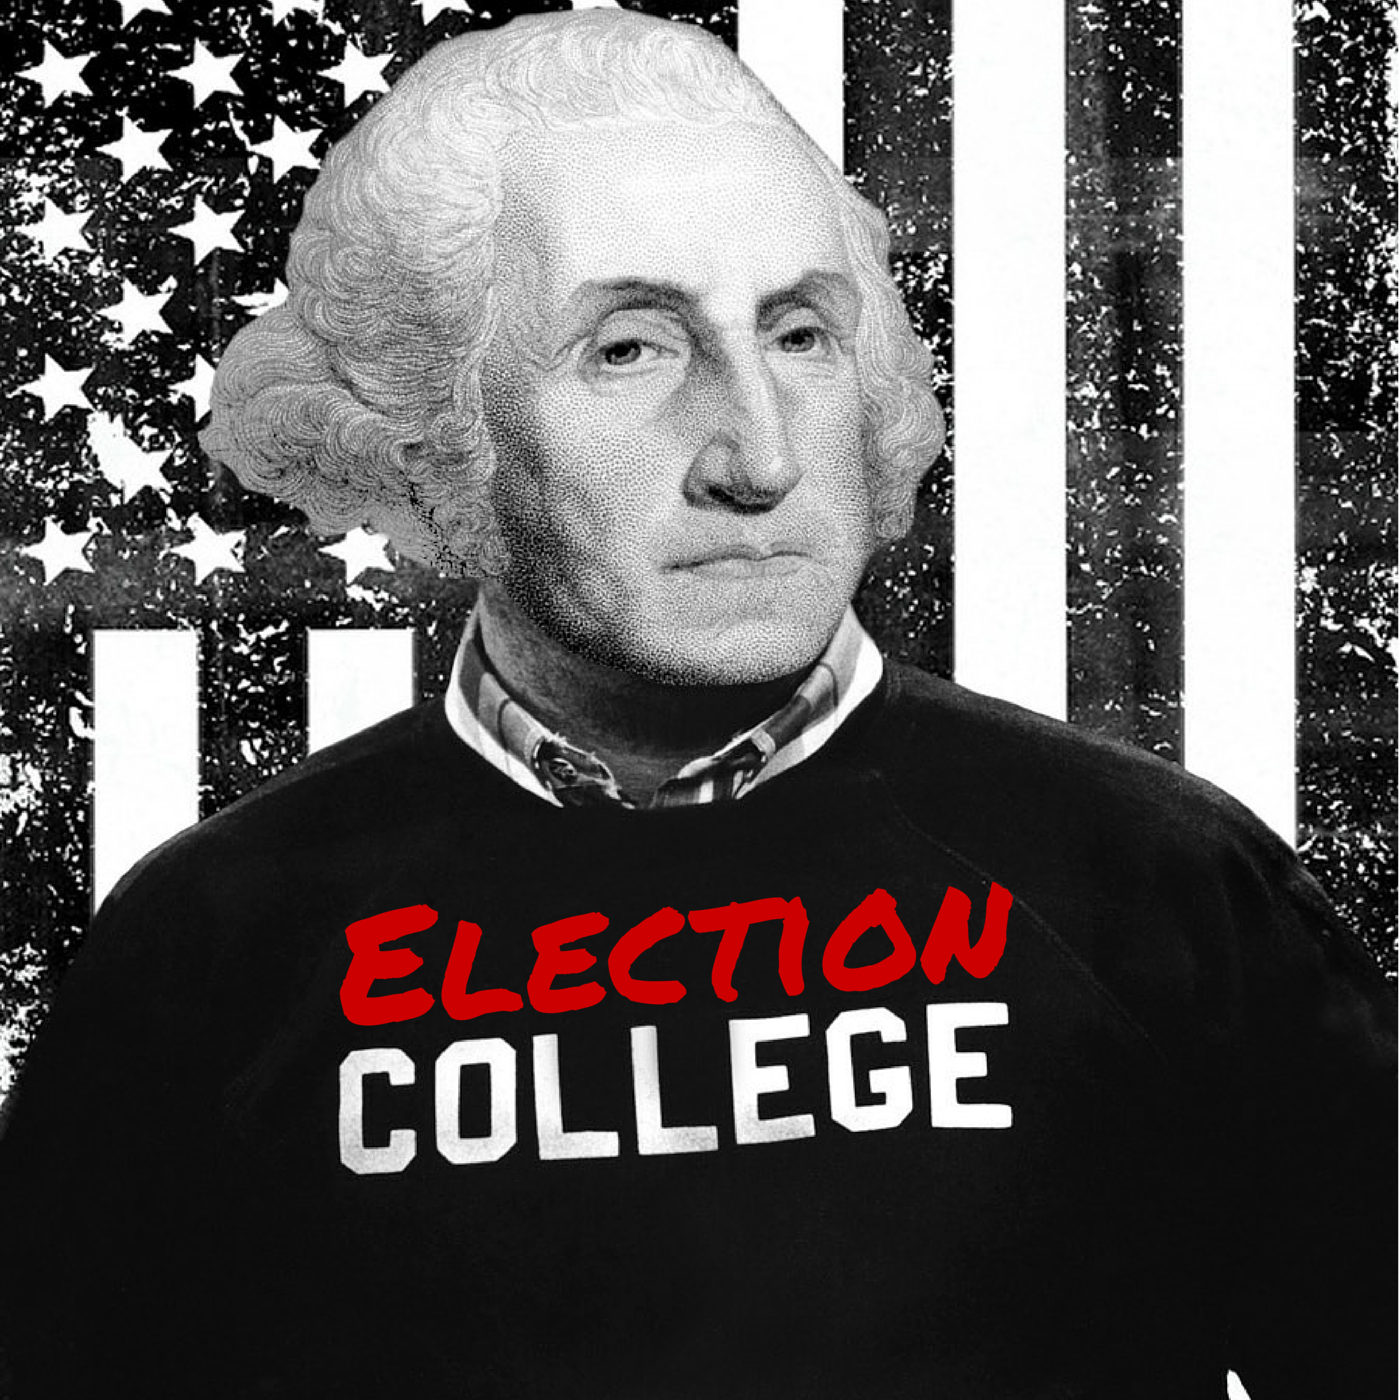 The Spitting Lyon - Matthew Lyon | Episode #119 | Election College: United States Presidential Election History